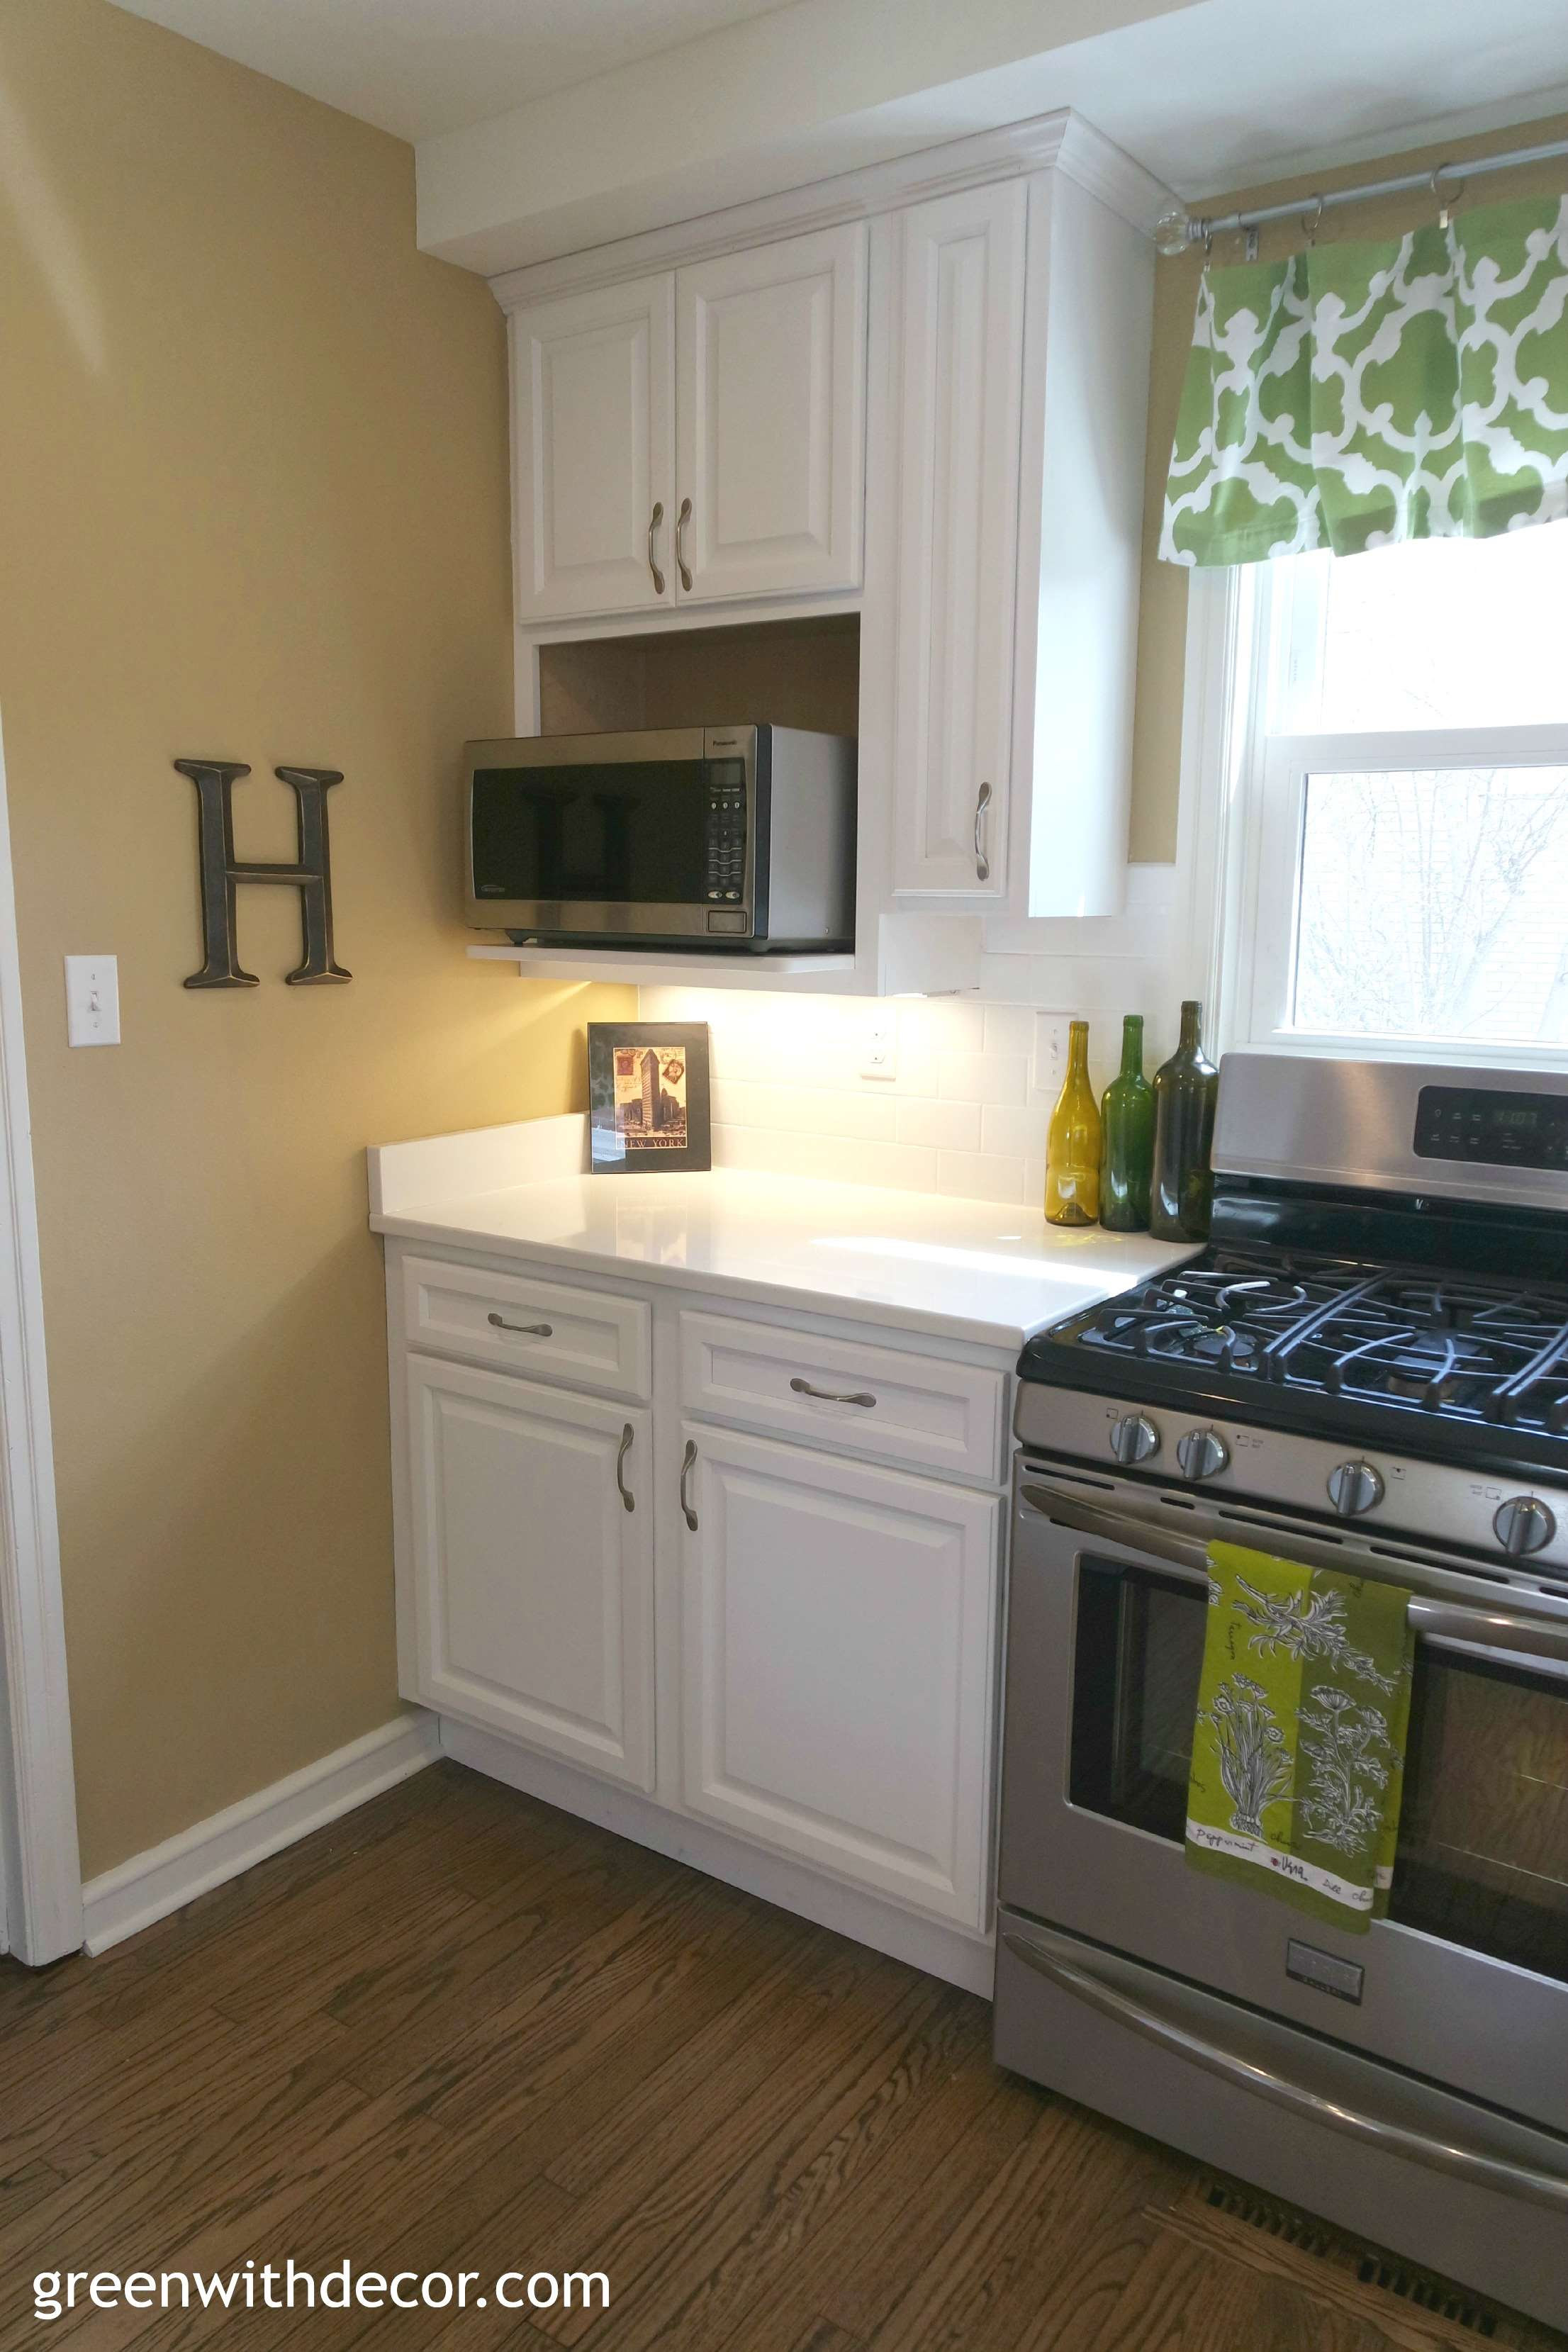 Green With Decor – Where to put light switches in the kitchen